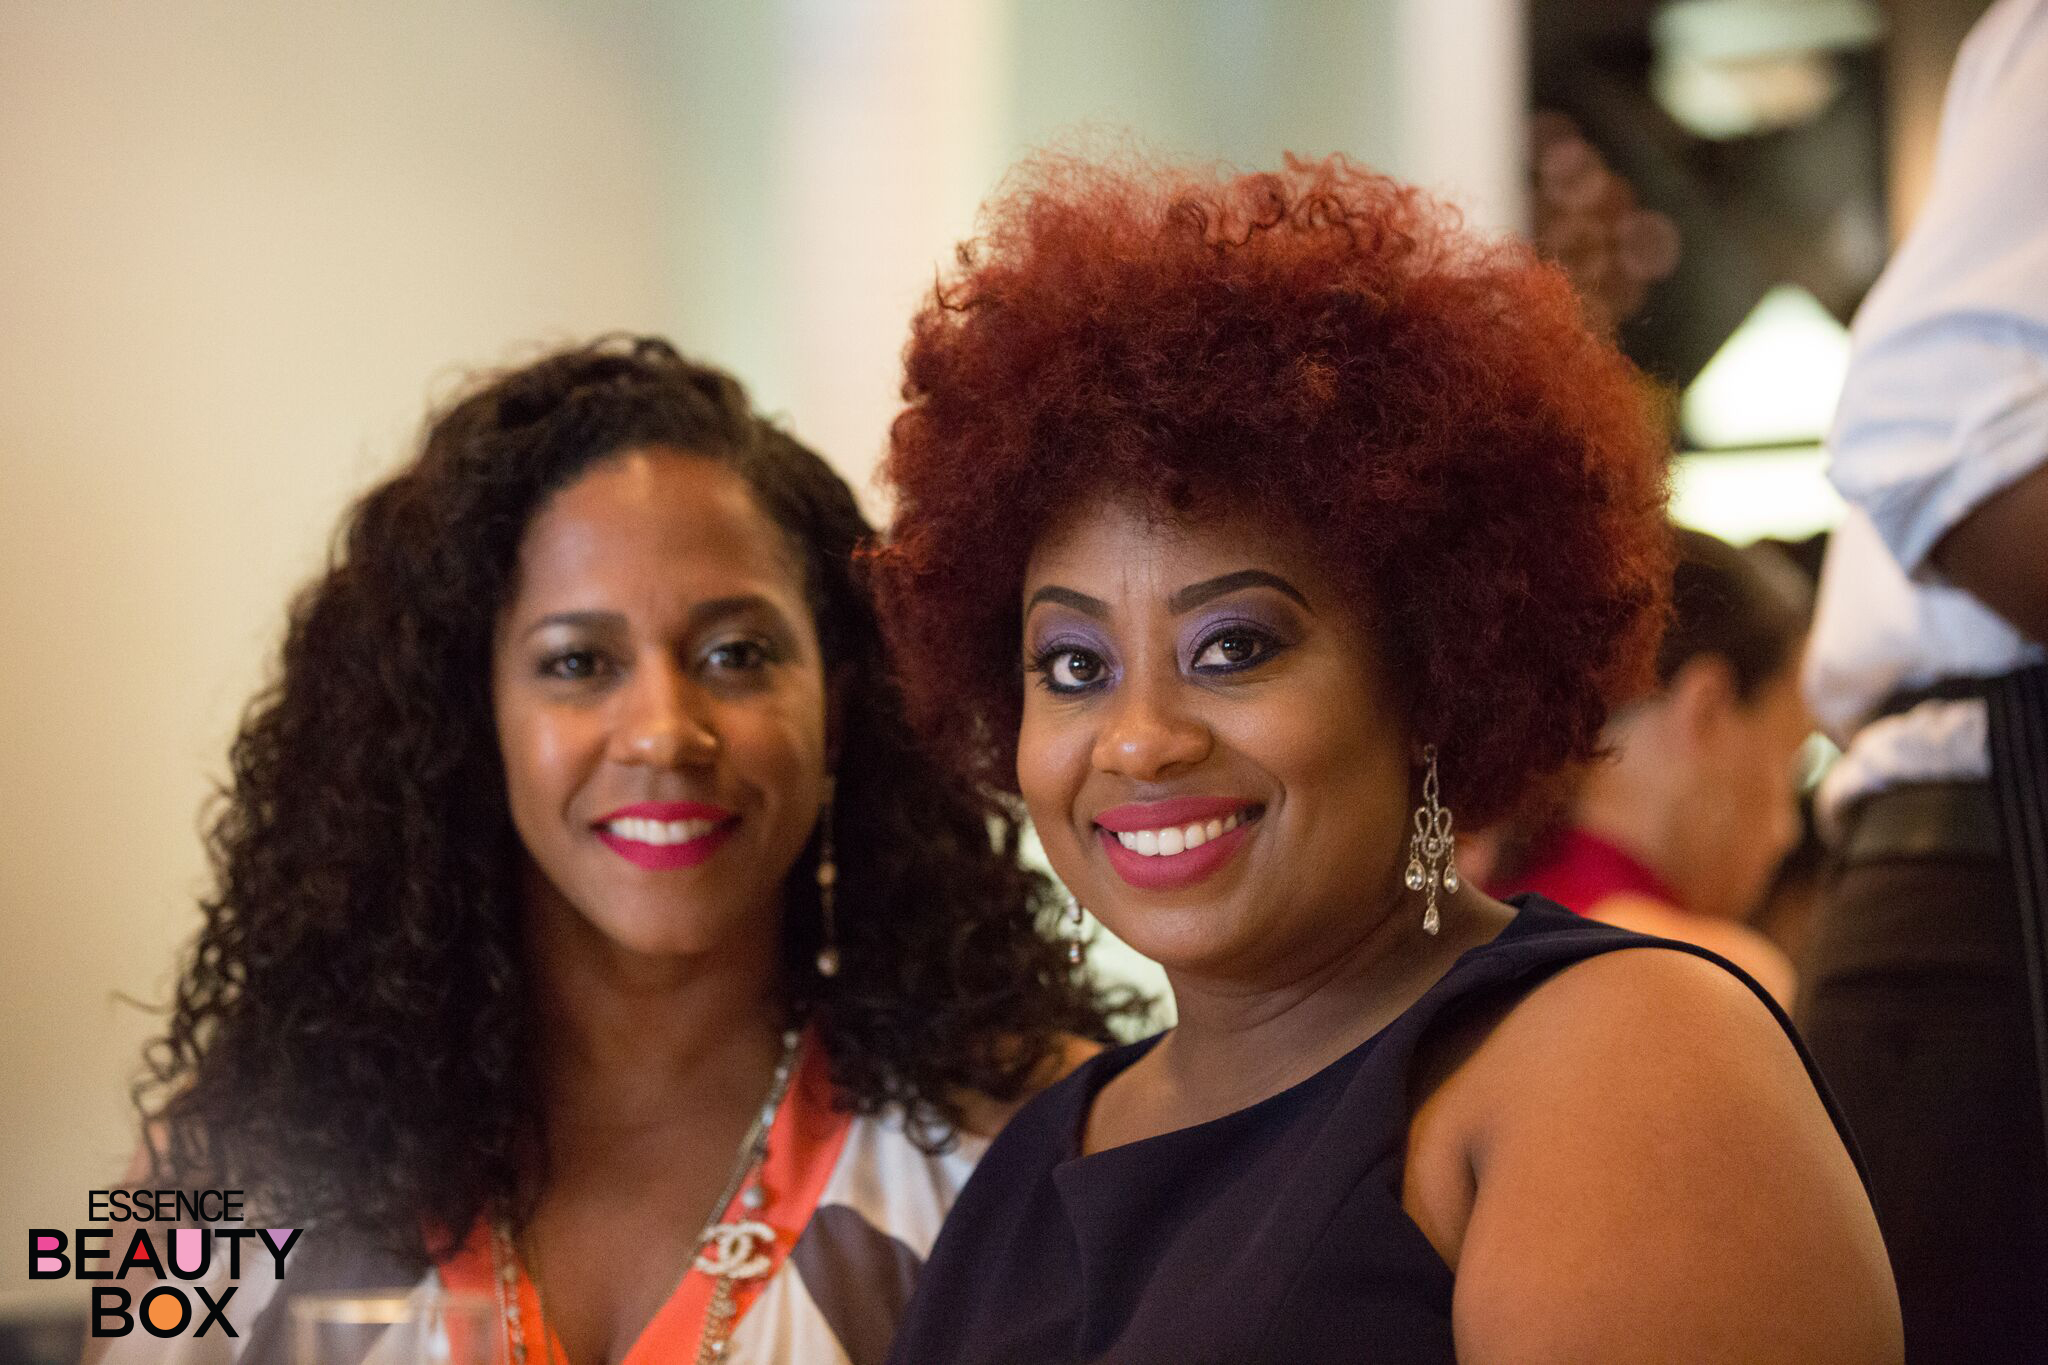 CURLS CEO and Founder Mahisha Dellinger (L) and Guest - Photo Credit: Essencebeautybox.com & E. Mackey & Roy Harvey